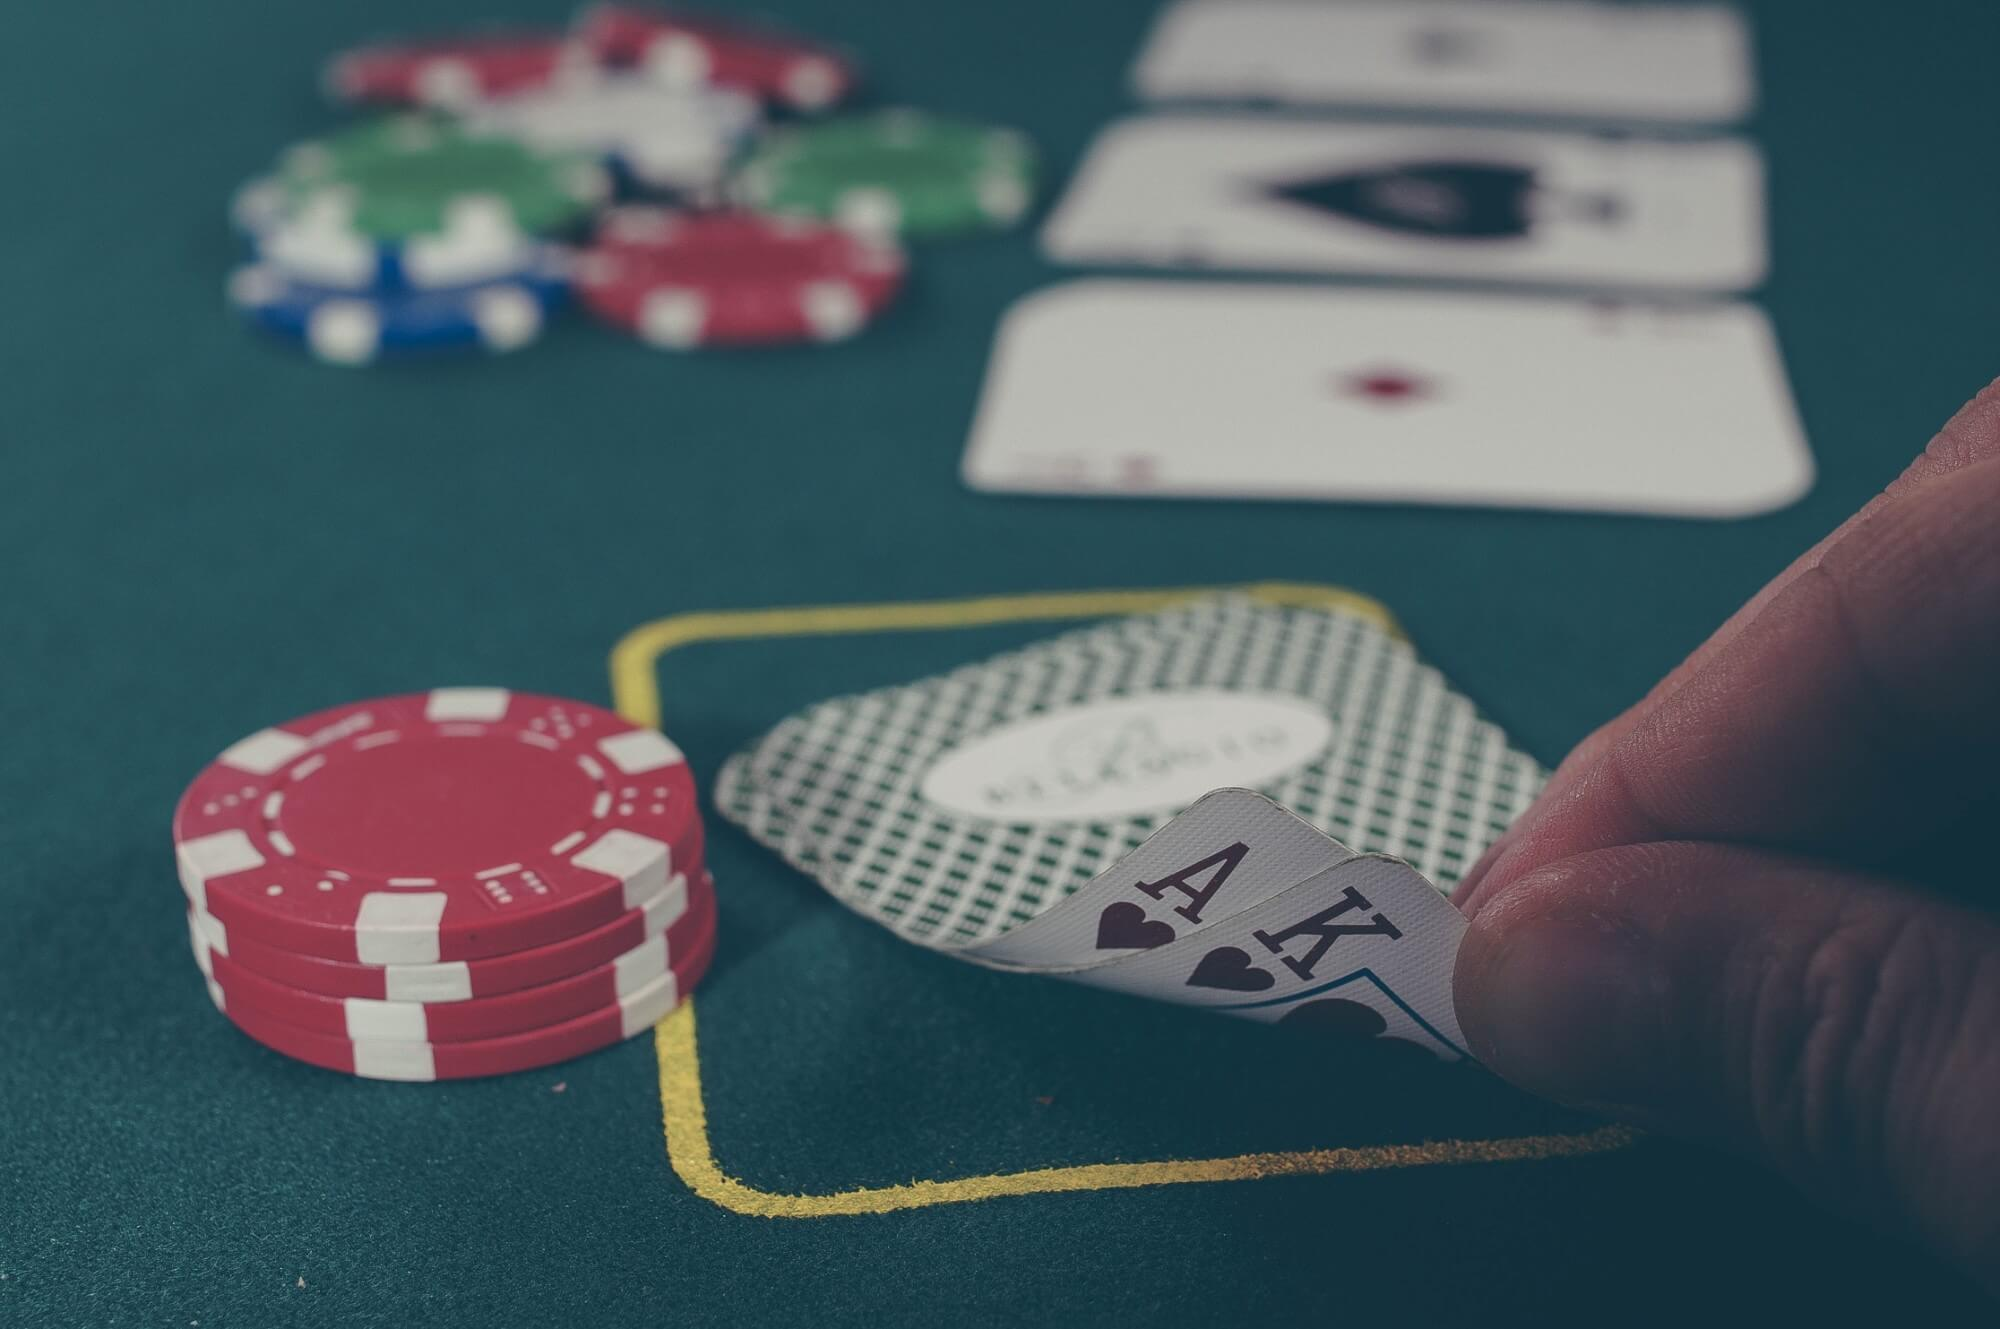 Close-up of poker hand with Ace and King